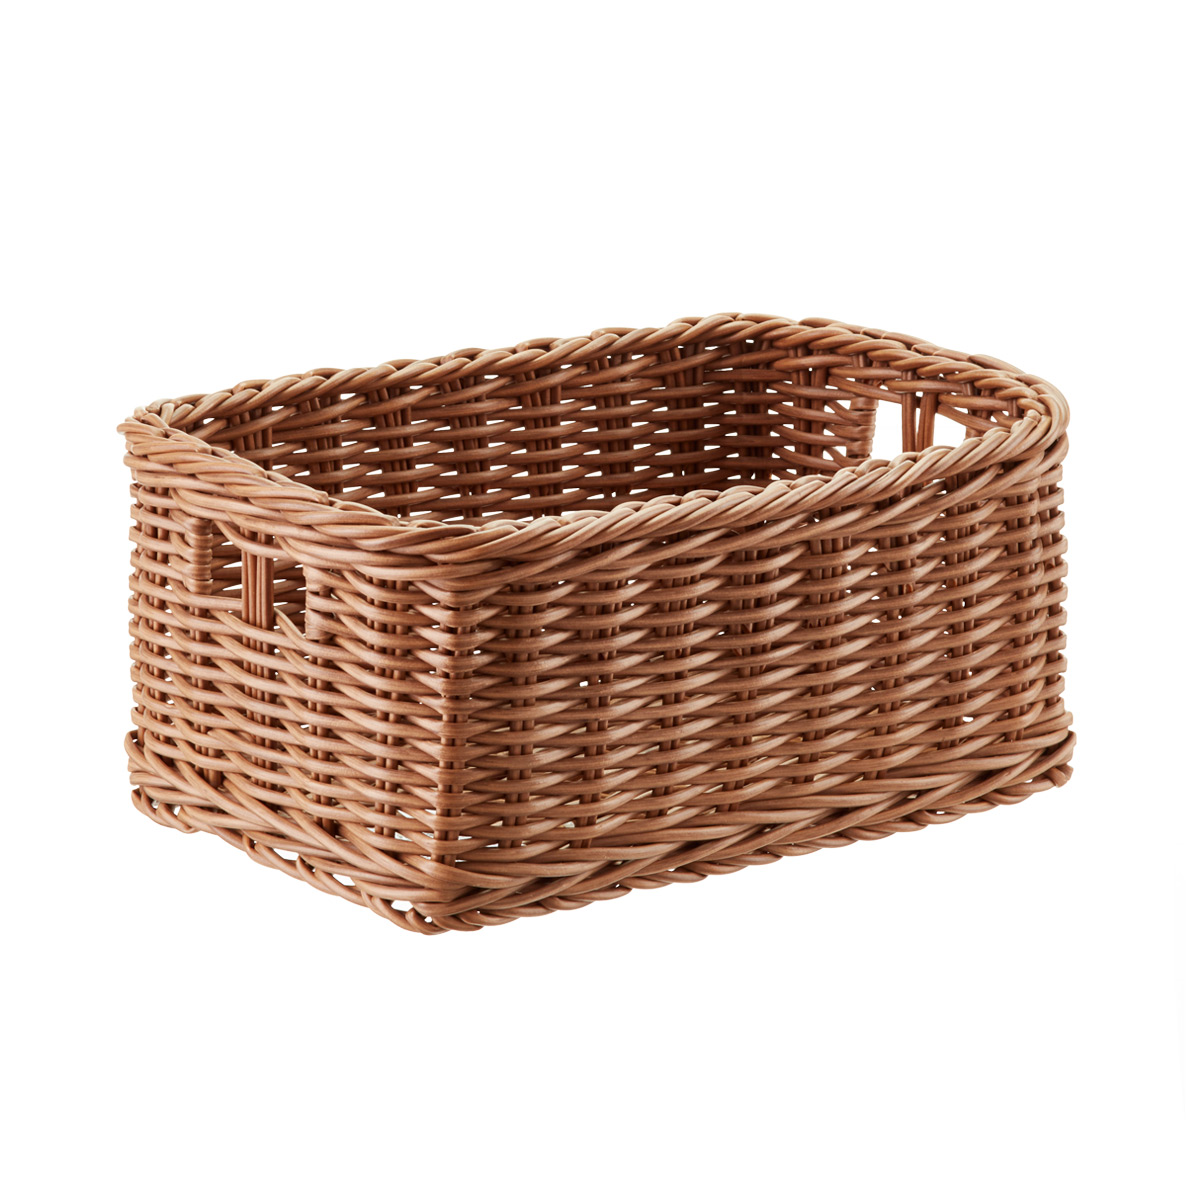 Trending Plastic Wicker Storage Bin with Handles wicker storage baskets